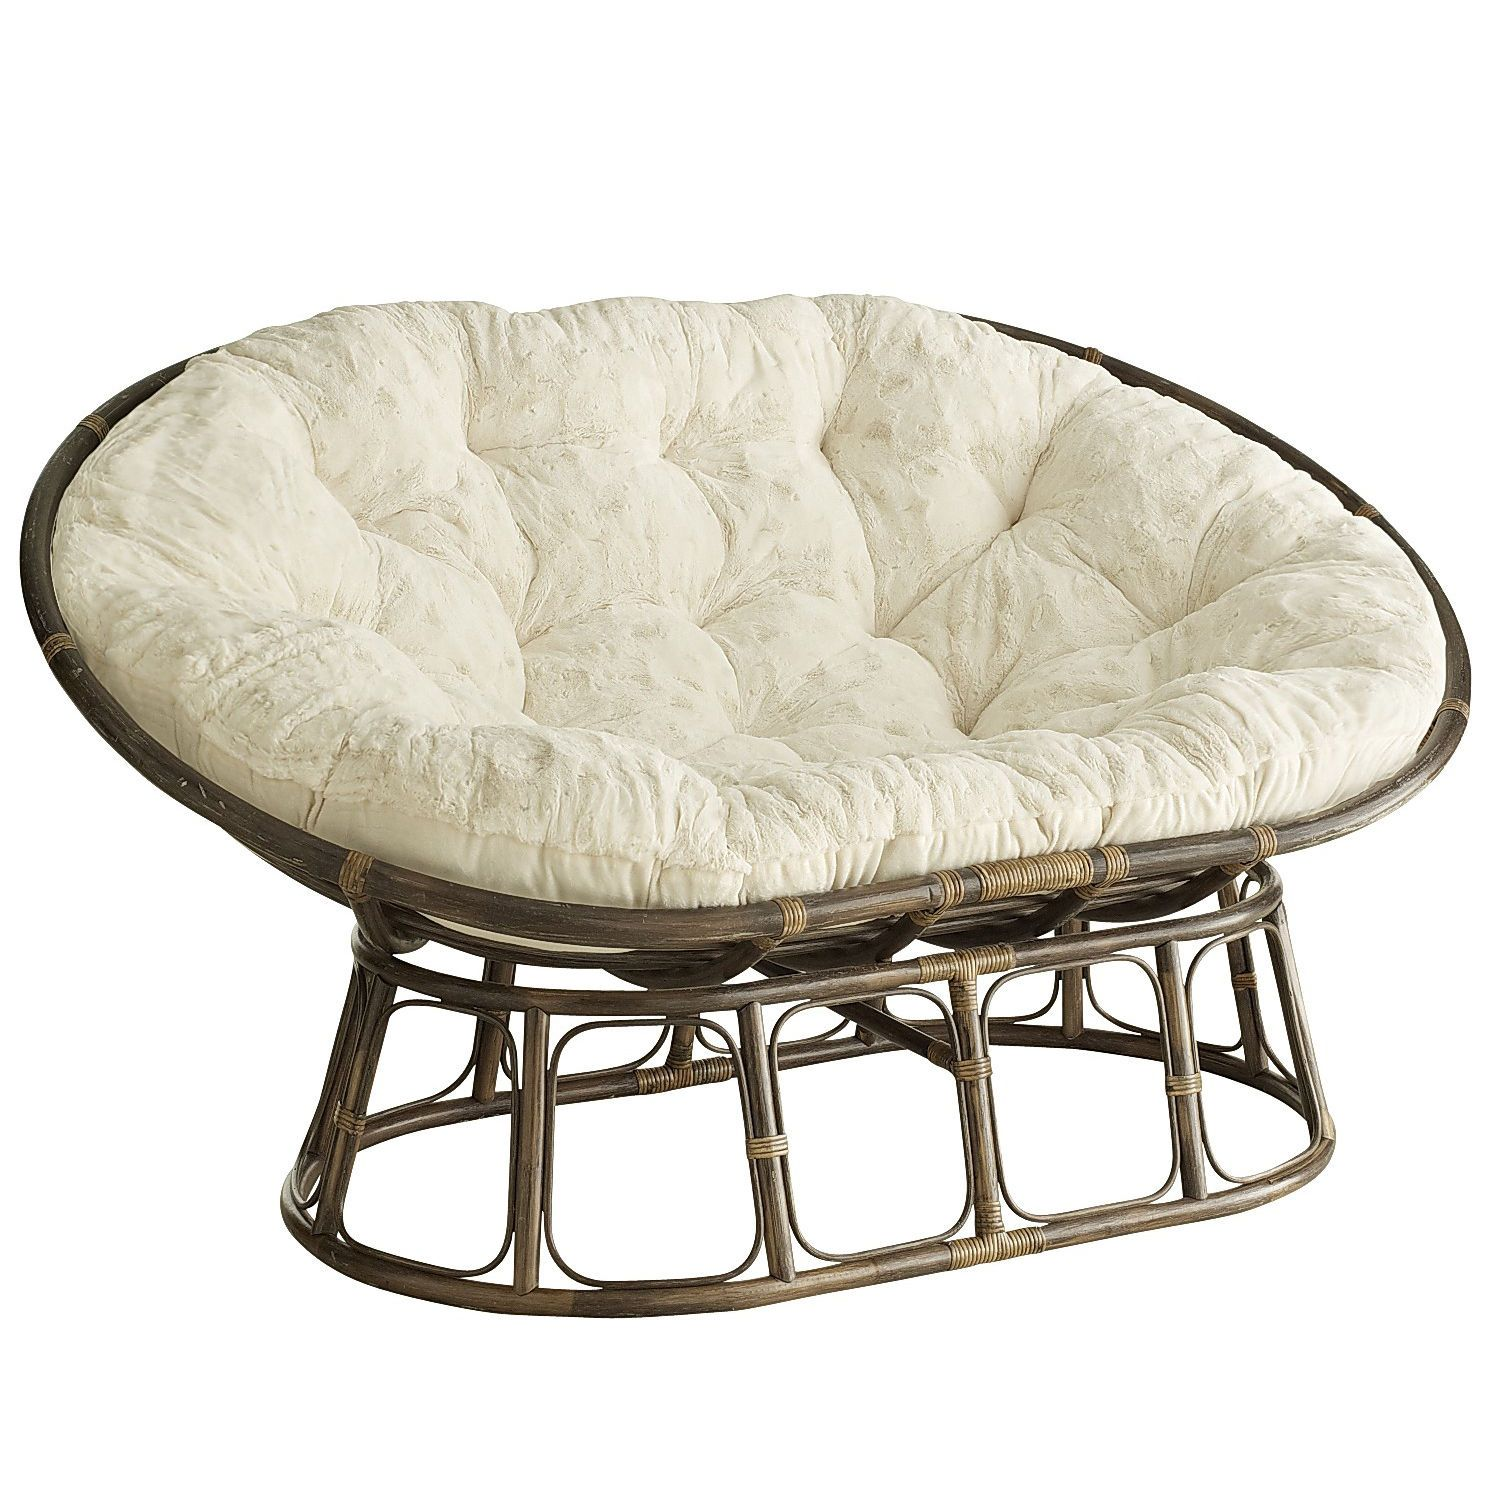 Pier 1 Double Papasan Chair. I Want One Of These So Bad It Physically Hurts.